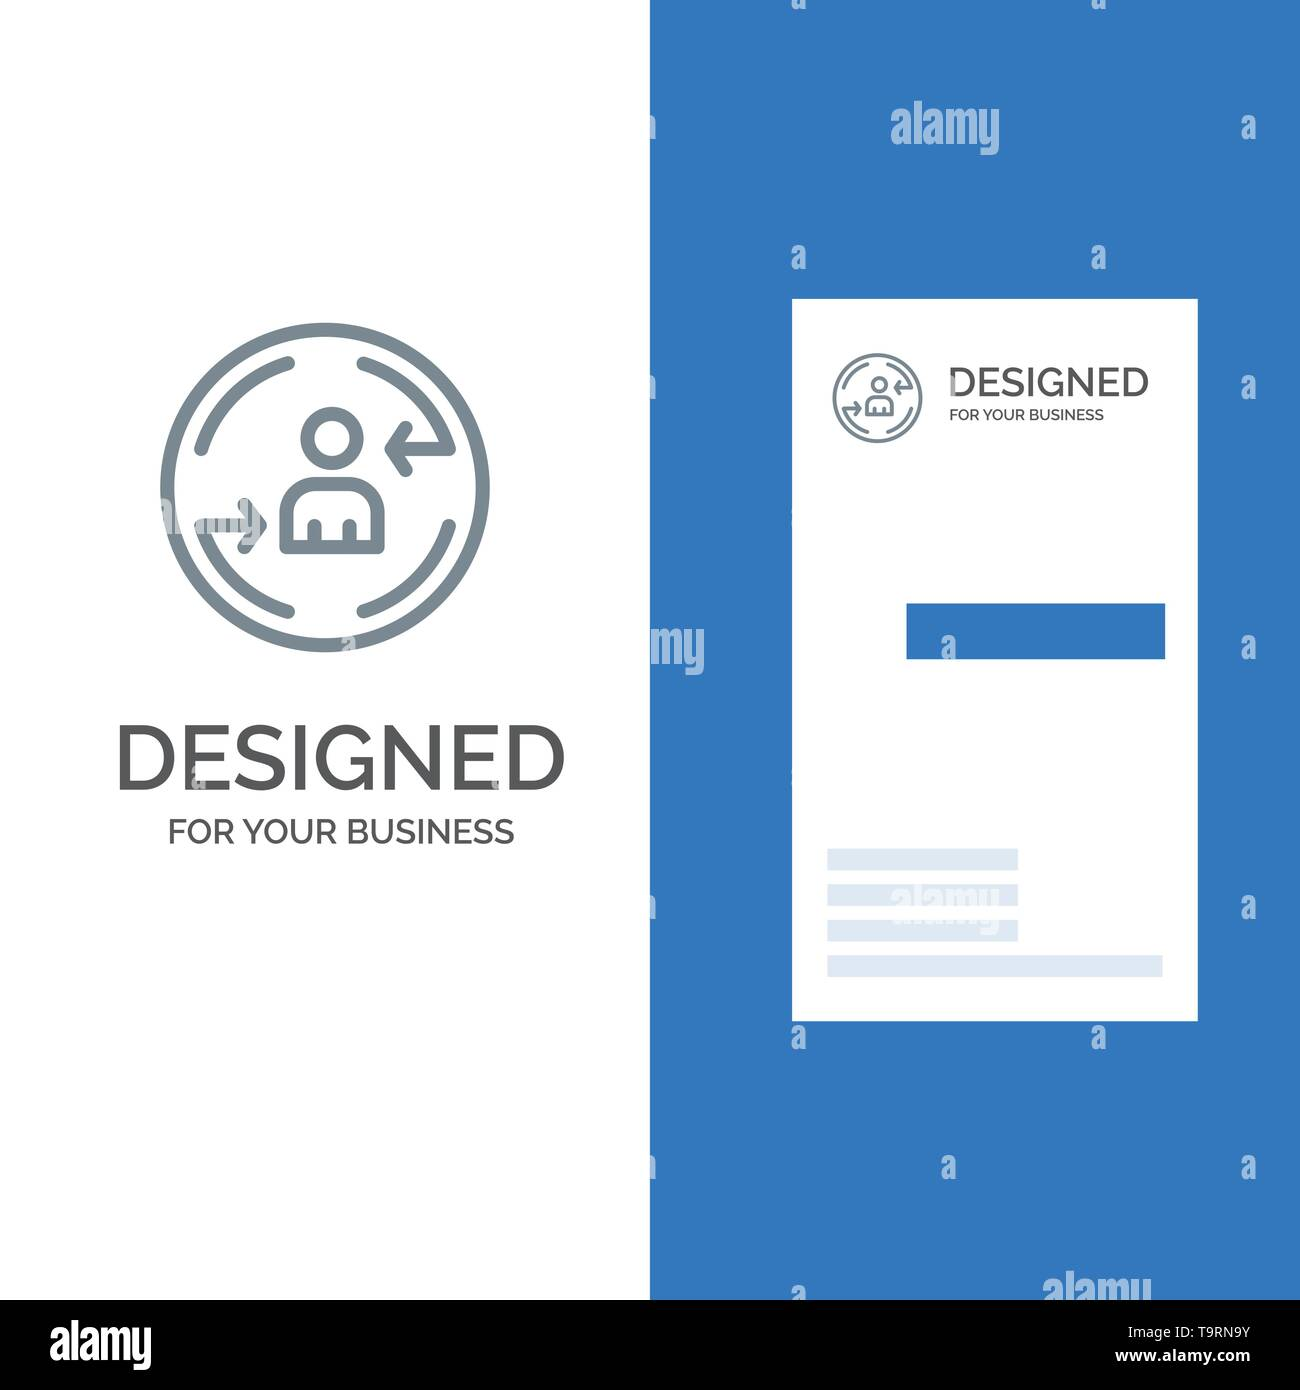 Returning, Visitor, Digital, Marketing Grey Logo Design and Business Card Template - Stock Image